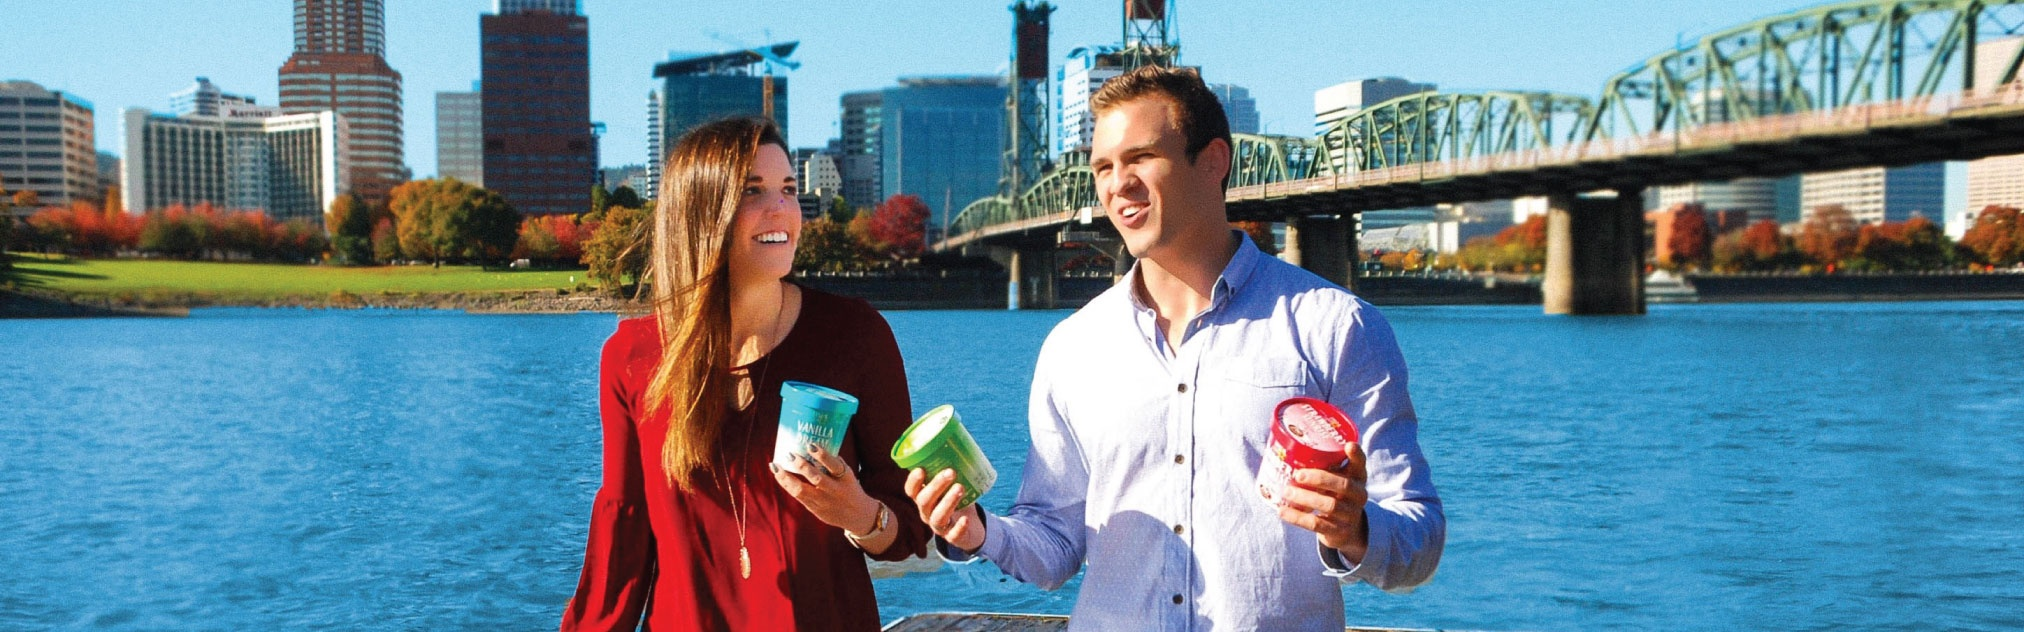 School of Accounting alumni hold their ice cream against a backdrop of Portland cityscape